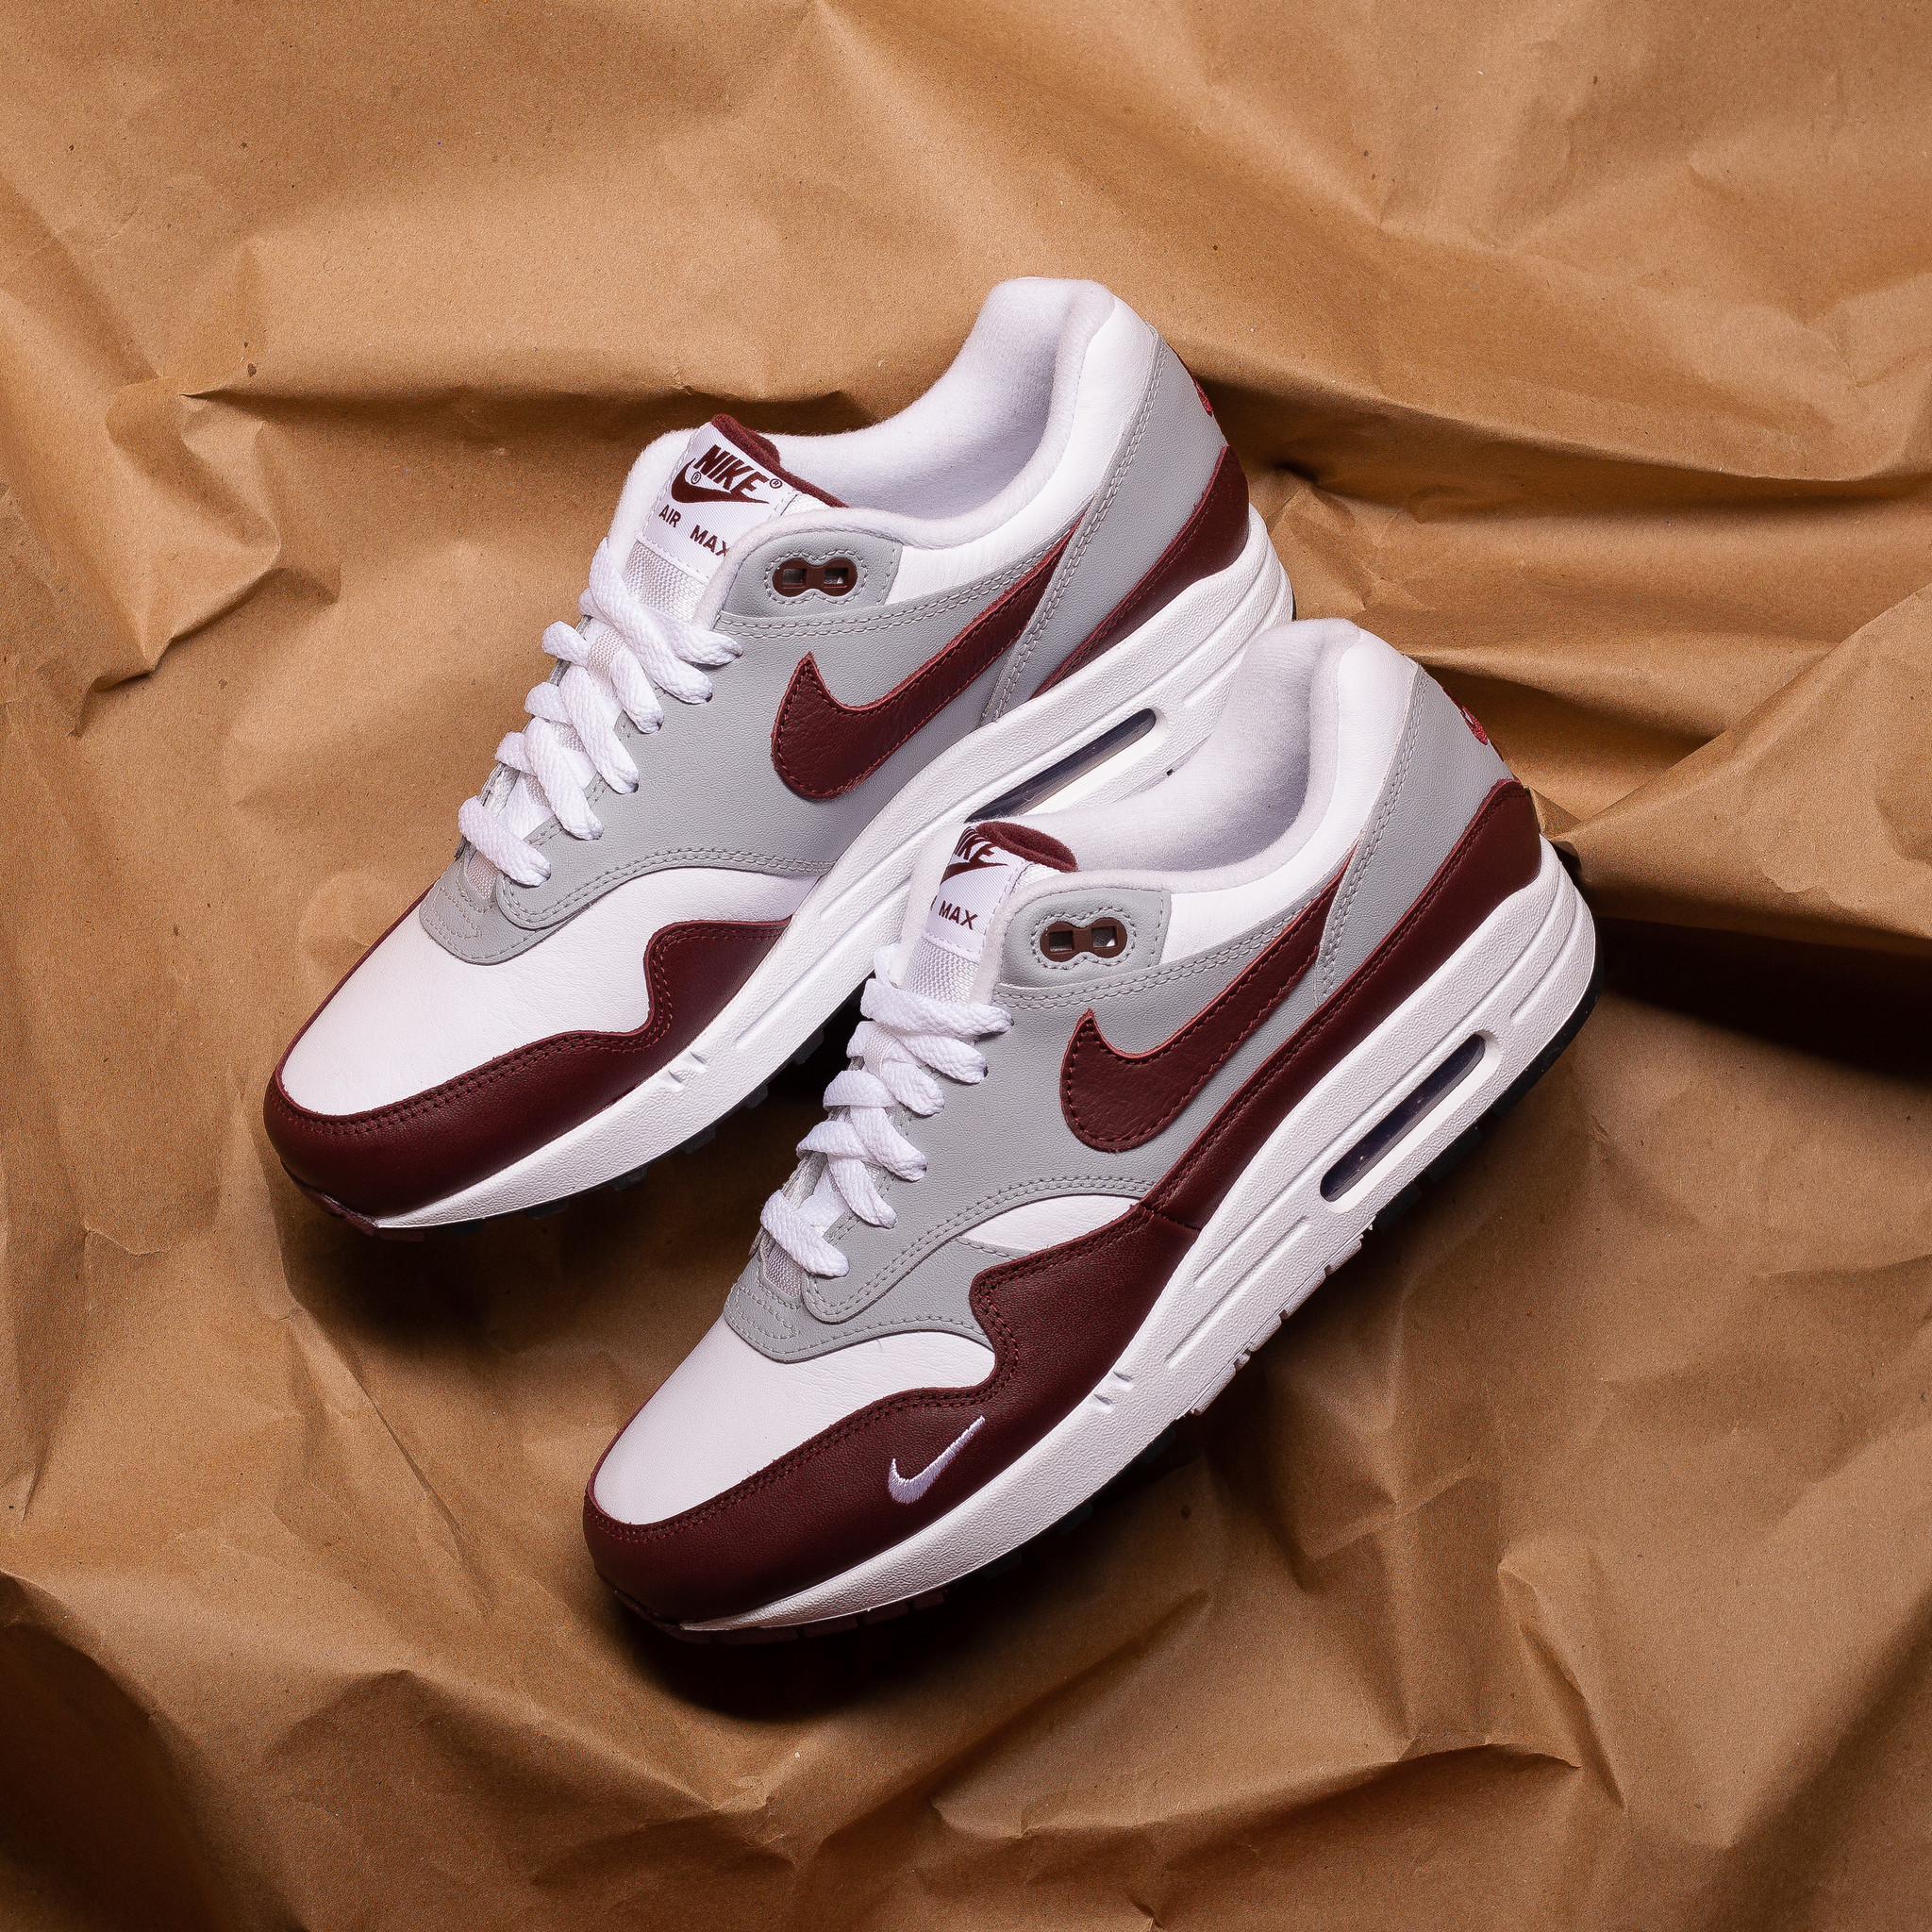 Nike Nike Air Max 1 Mystic Dates